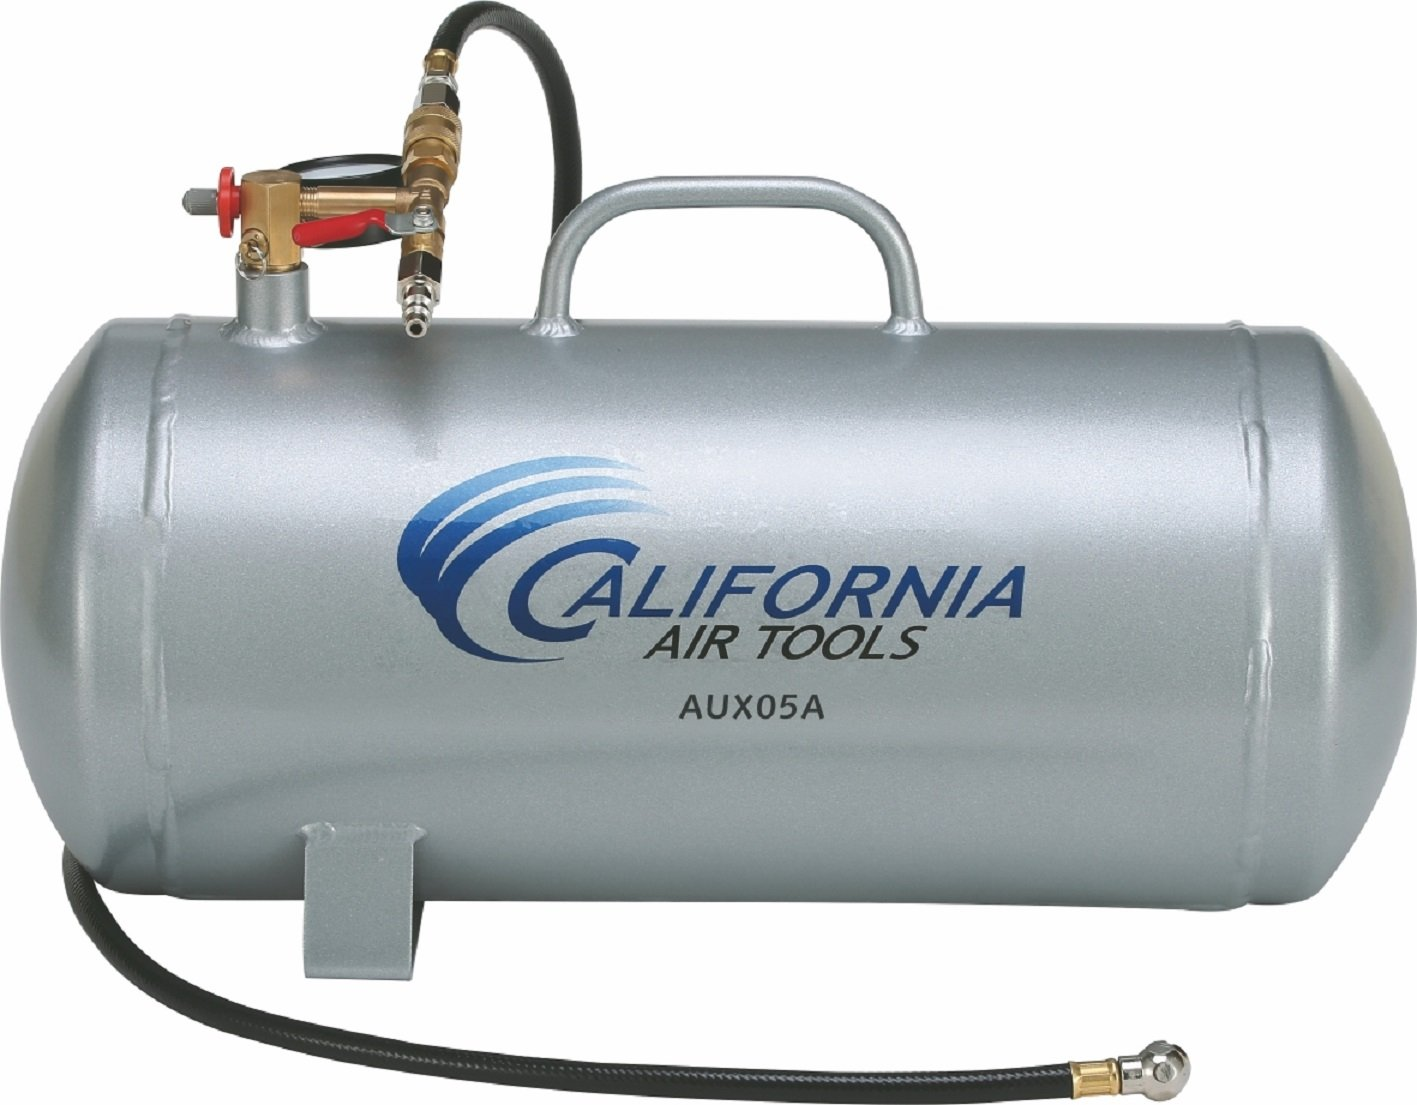 California Air Tools CAT-AUX05A 5 gallon Lightweight Portable Aluminum Air Tank, Silver